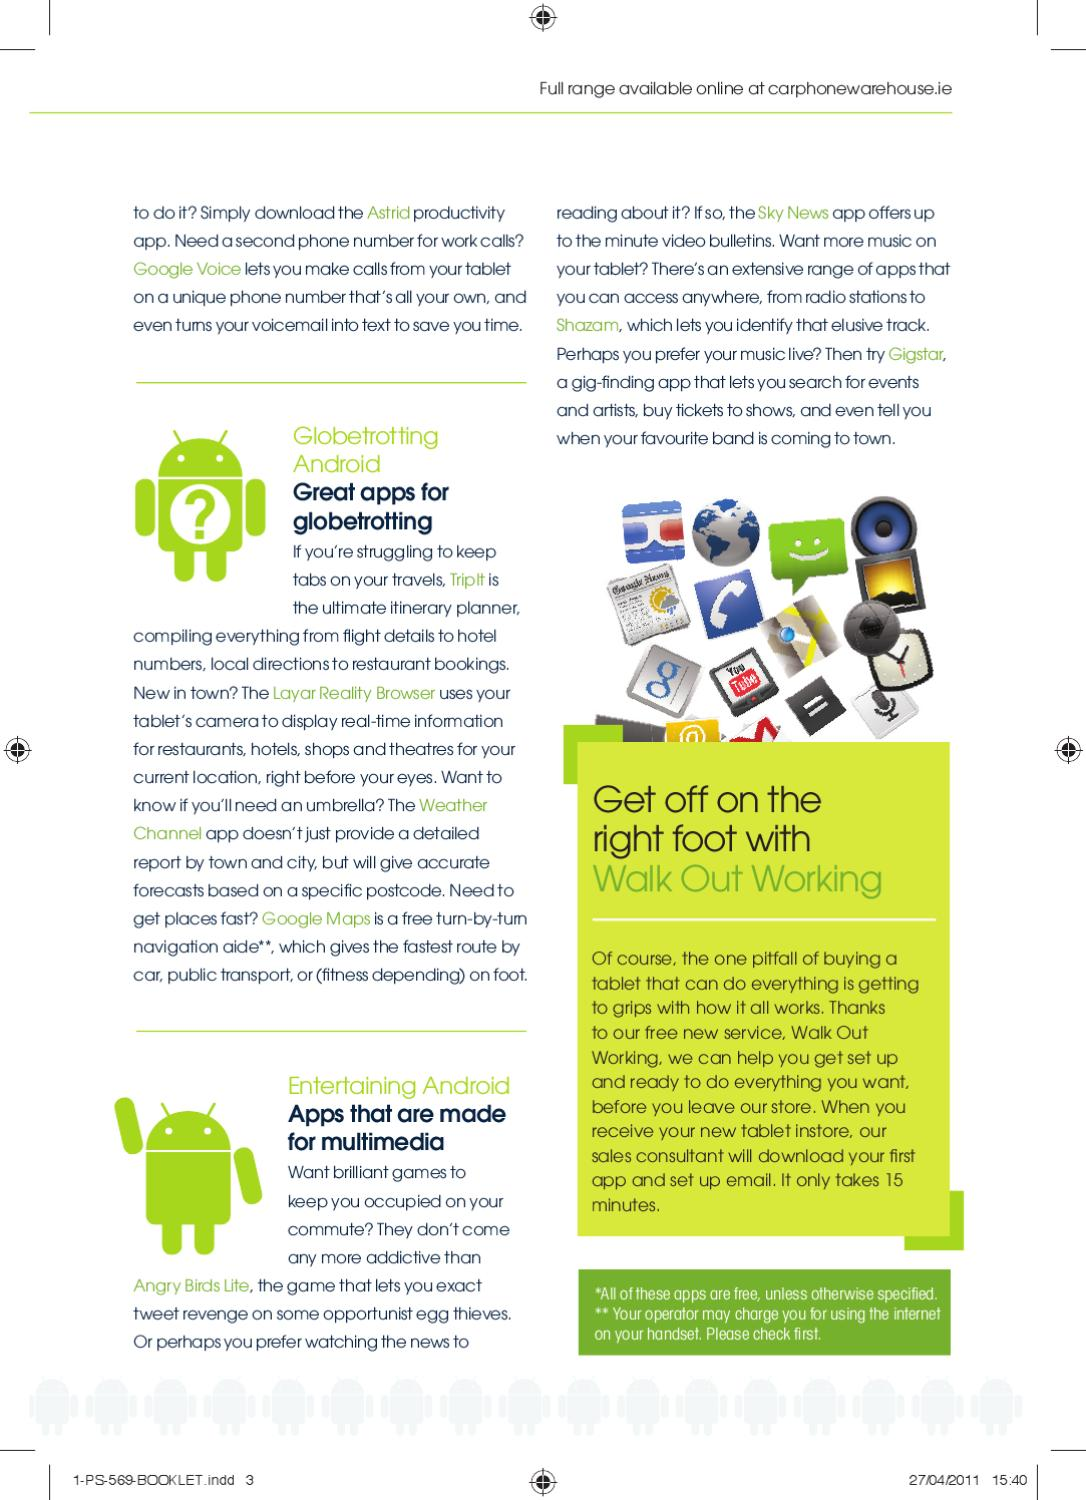 The Carphone Warehouse Tablet Guide - Summer 2011